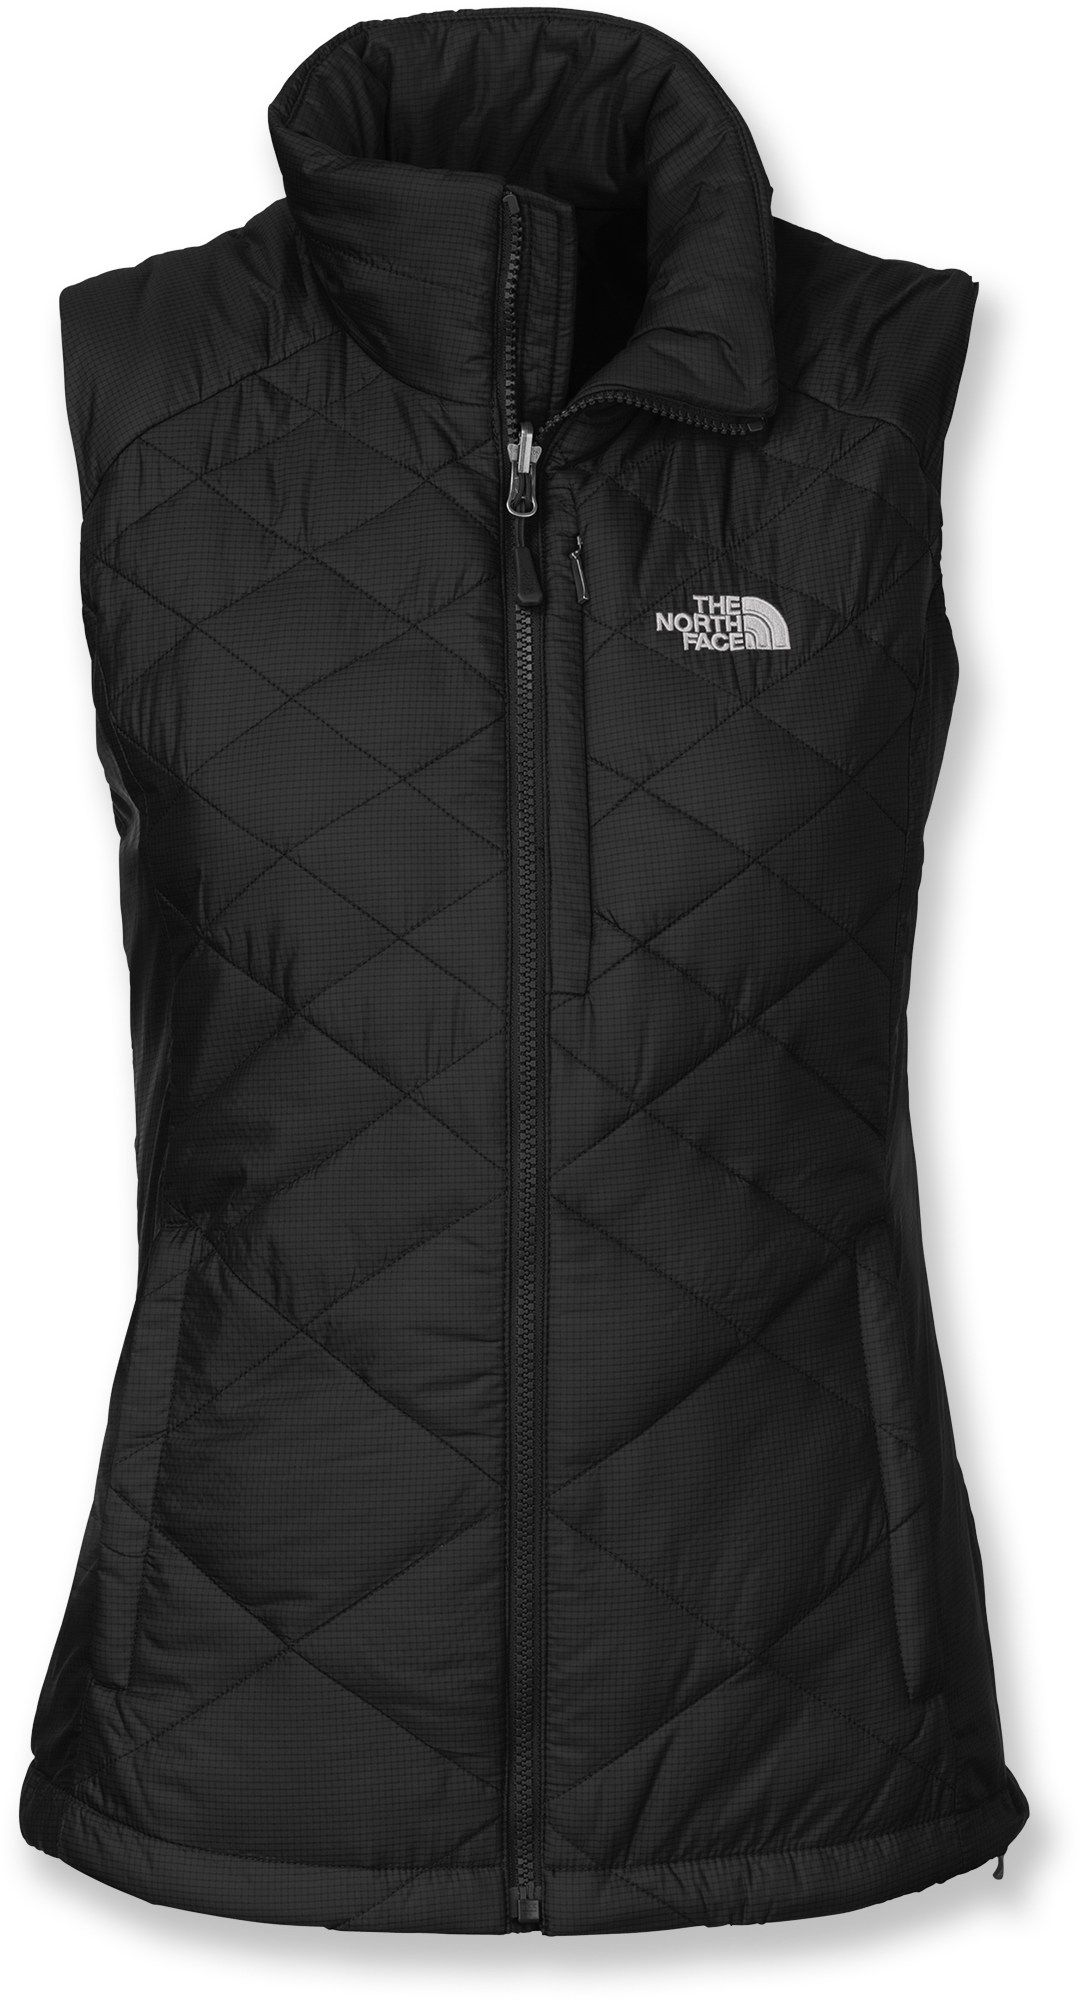 ab86279ee Pin by Ruth Saldana on The north face in 2019 | North face vest ...